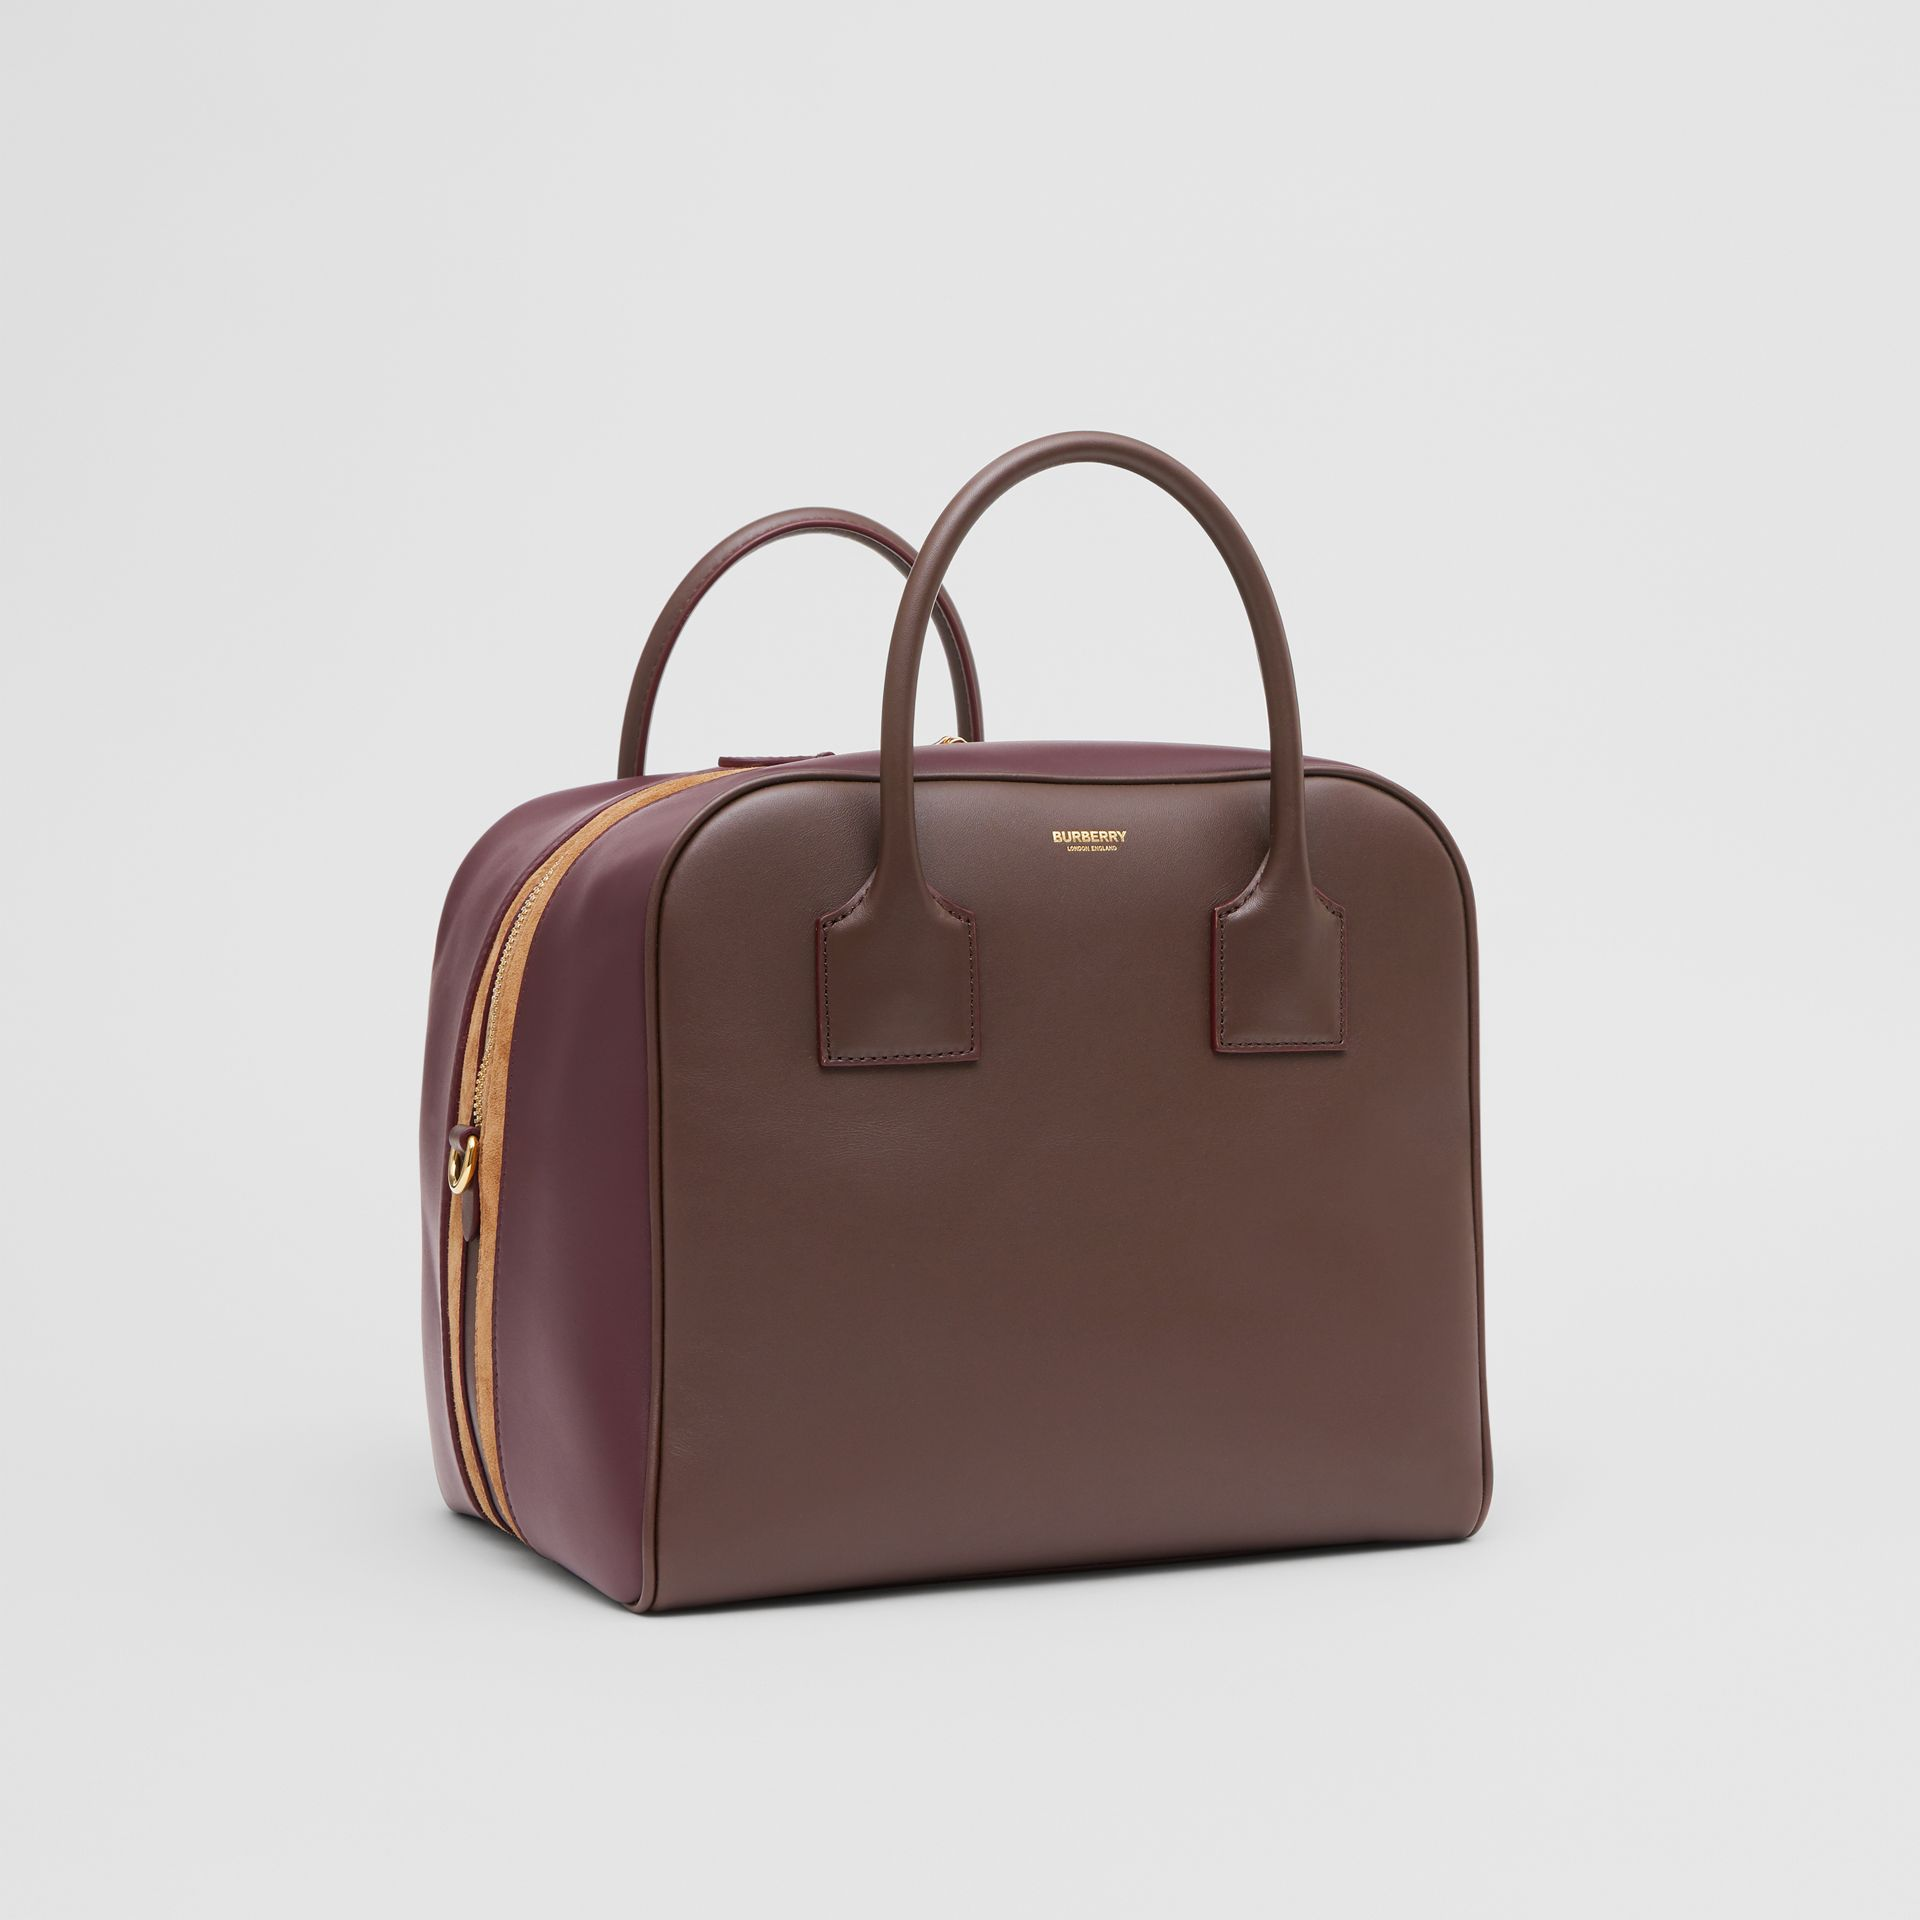 Medium Leather and Suede Cube Bag in Mahogany - Women | Burberry United States - gallery image 6